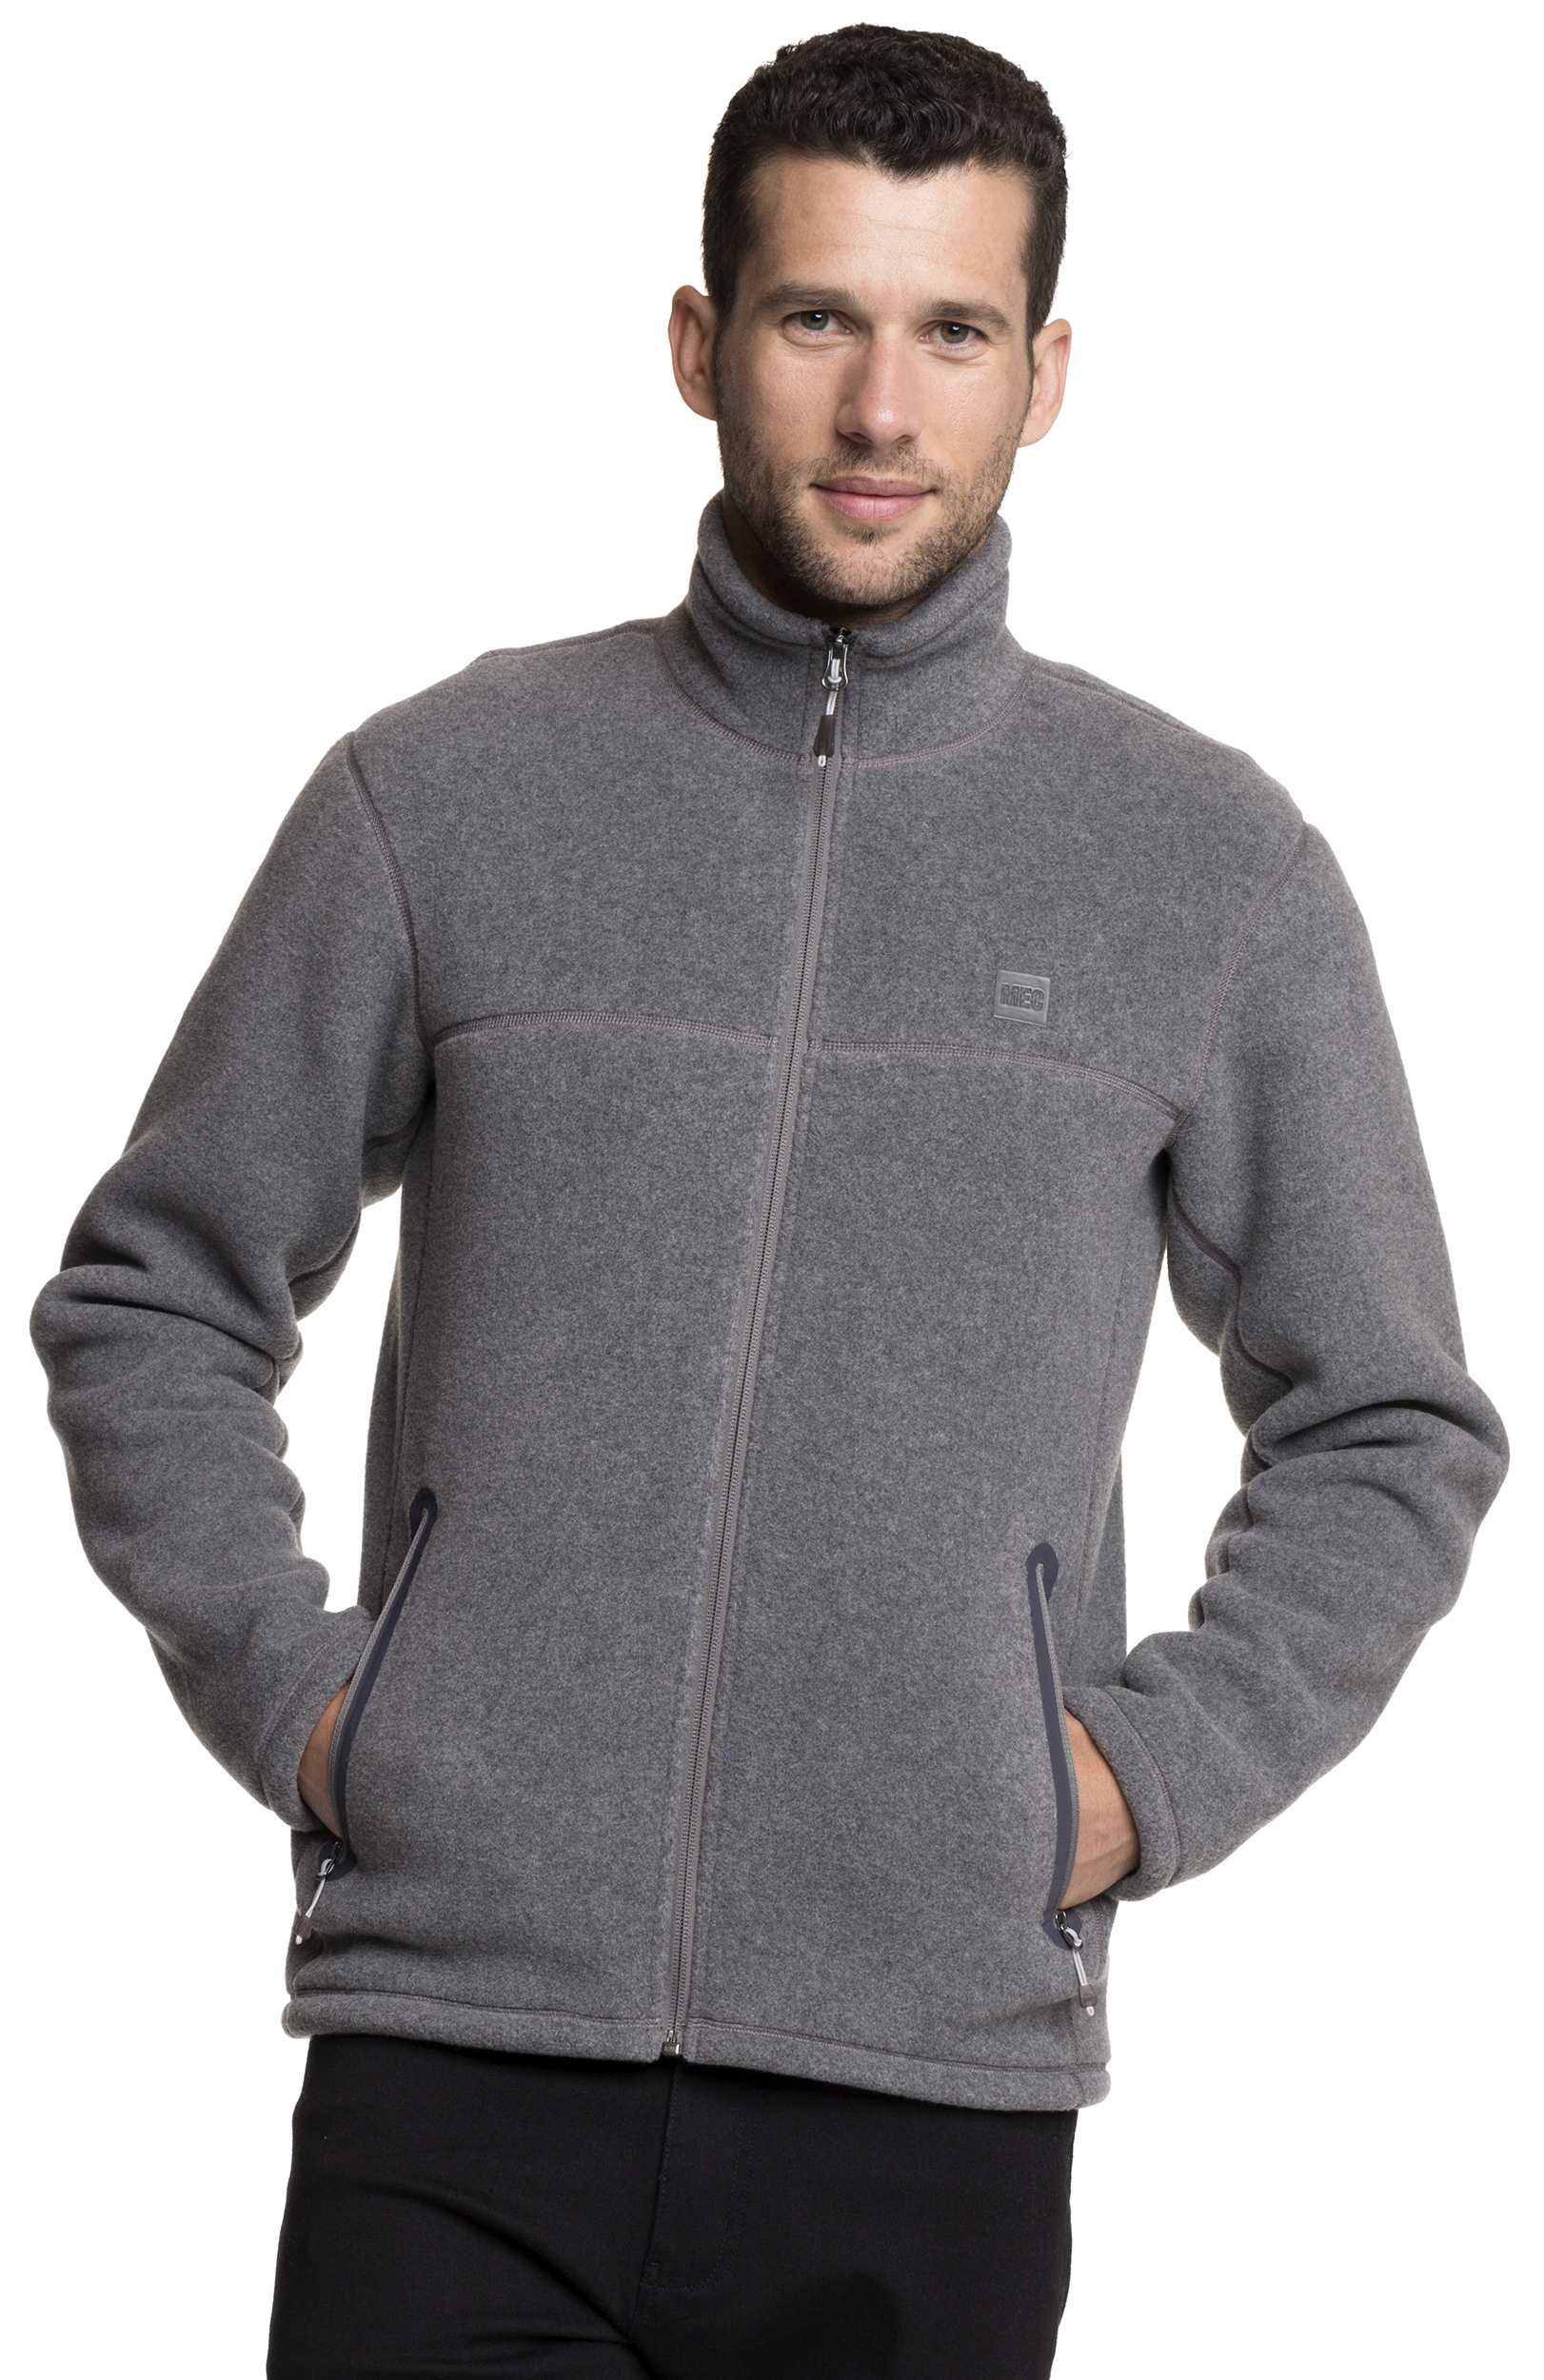 2d1de2f3c Fleece jackets